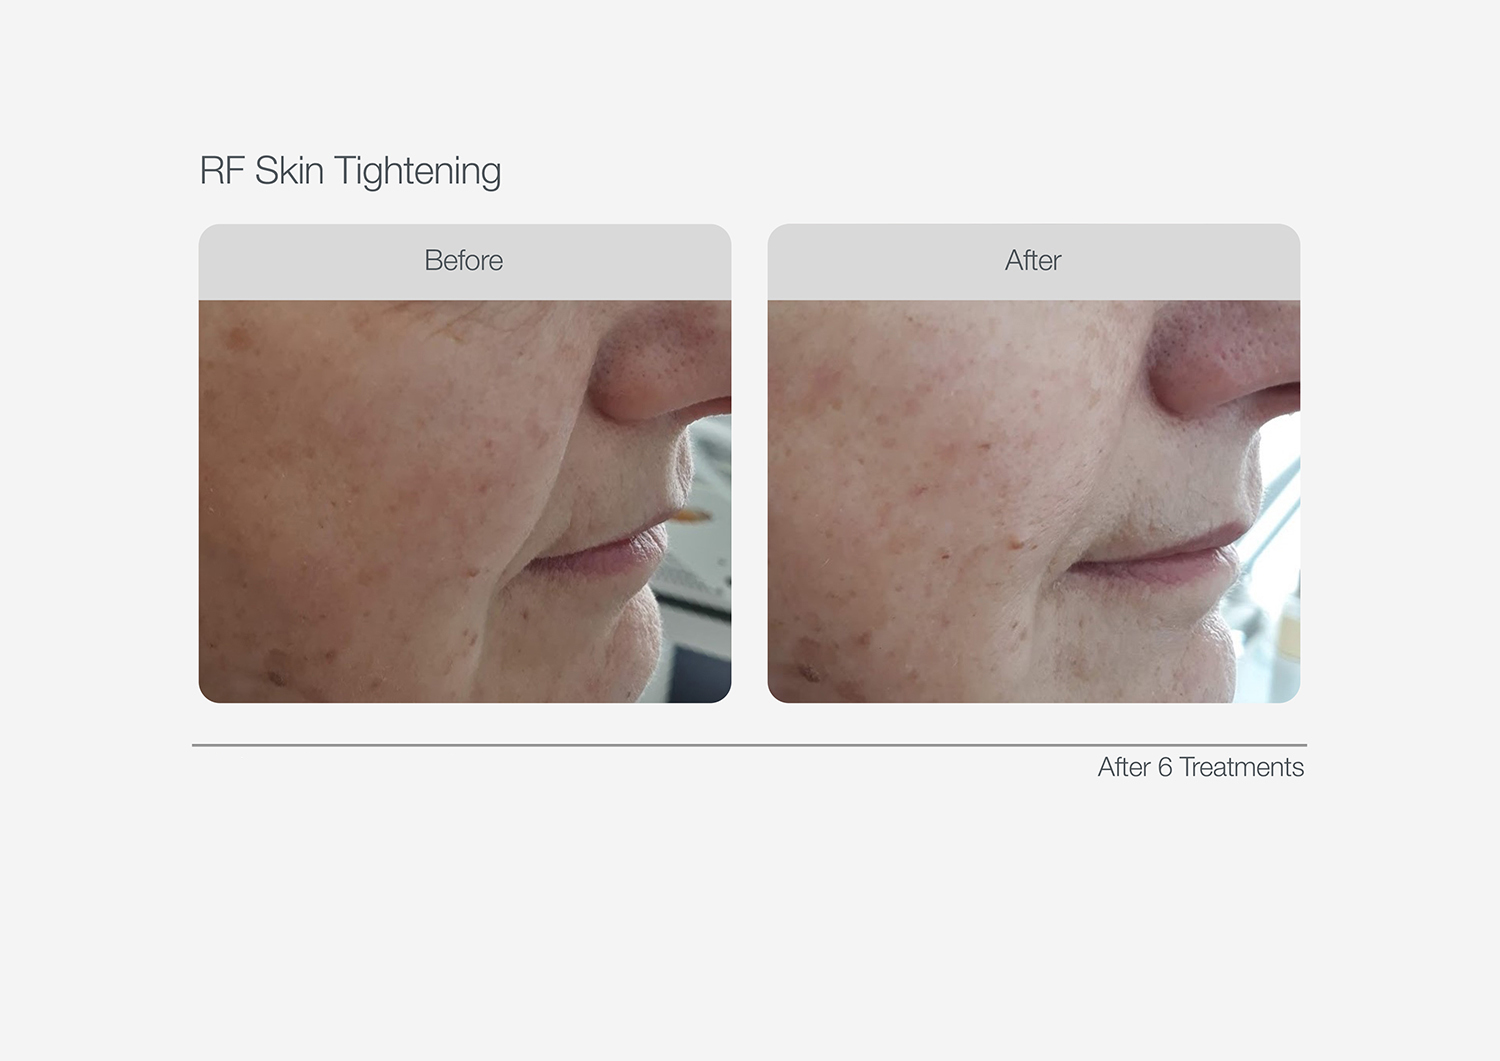 RF-Skin-Tightening-Before-After-04